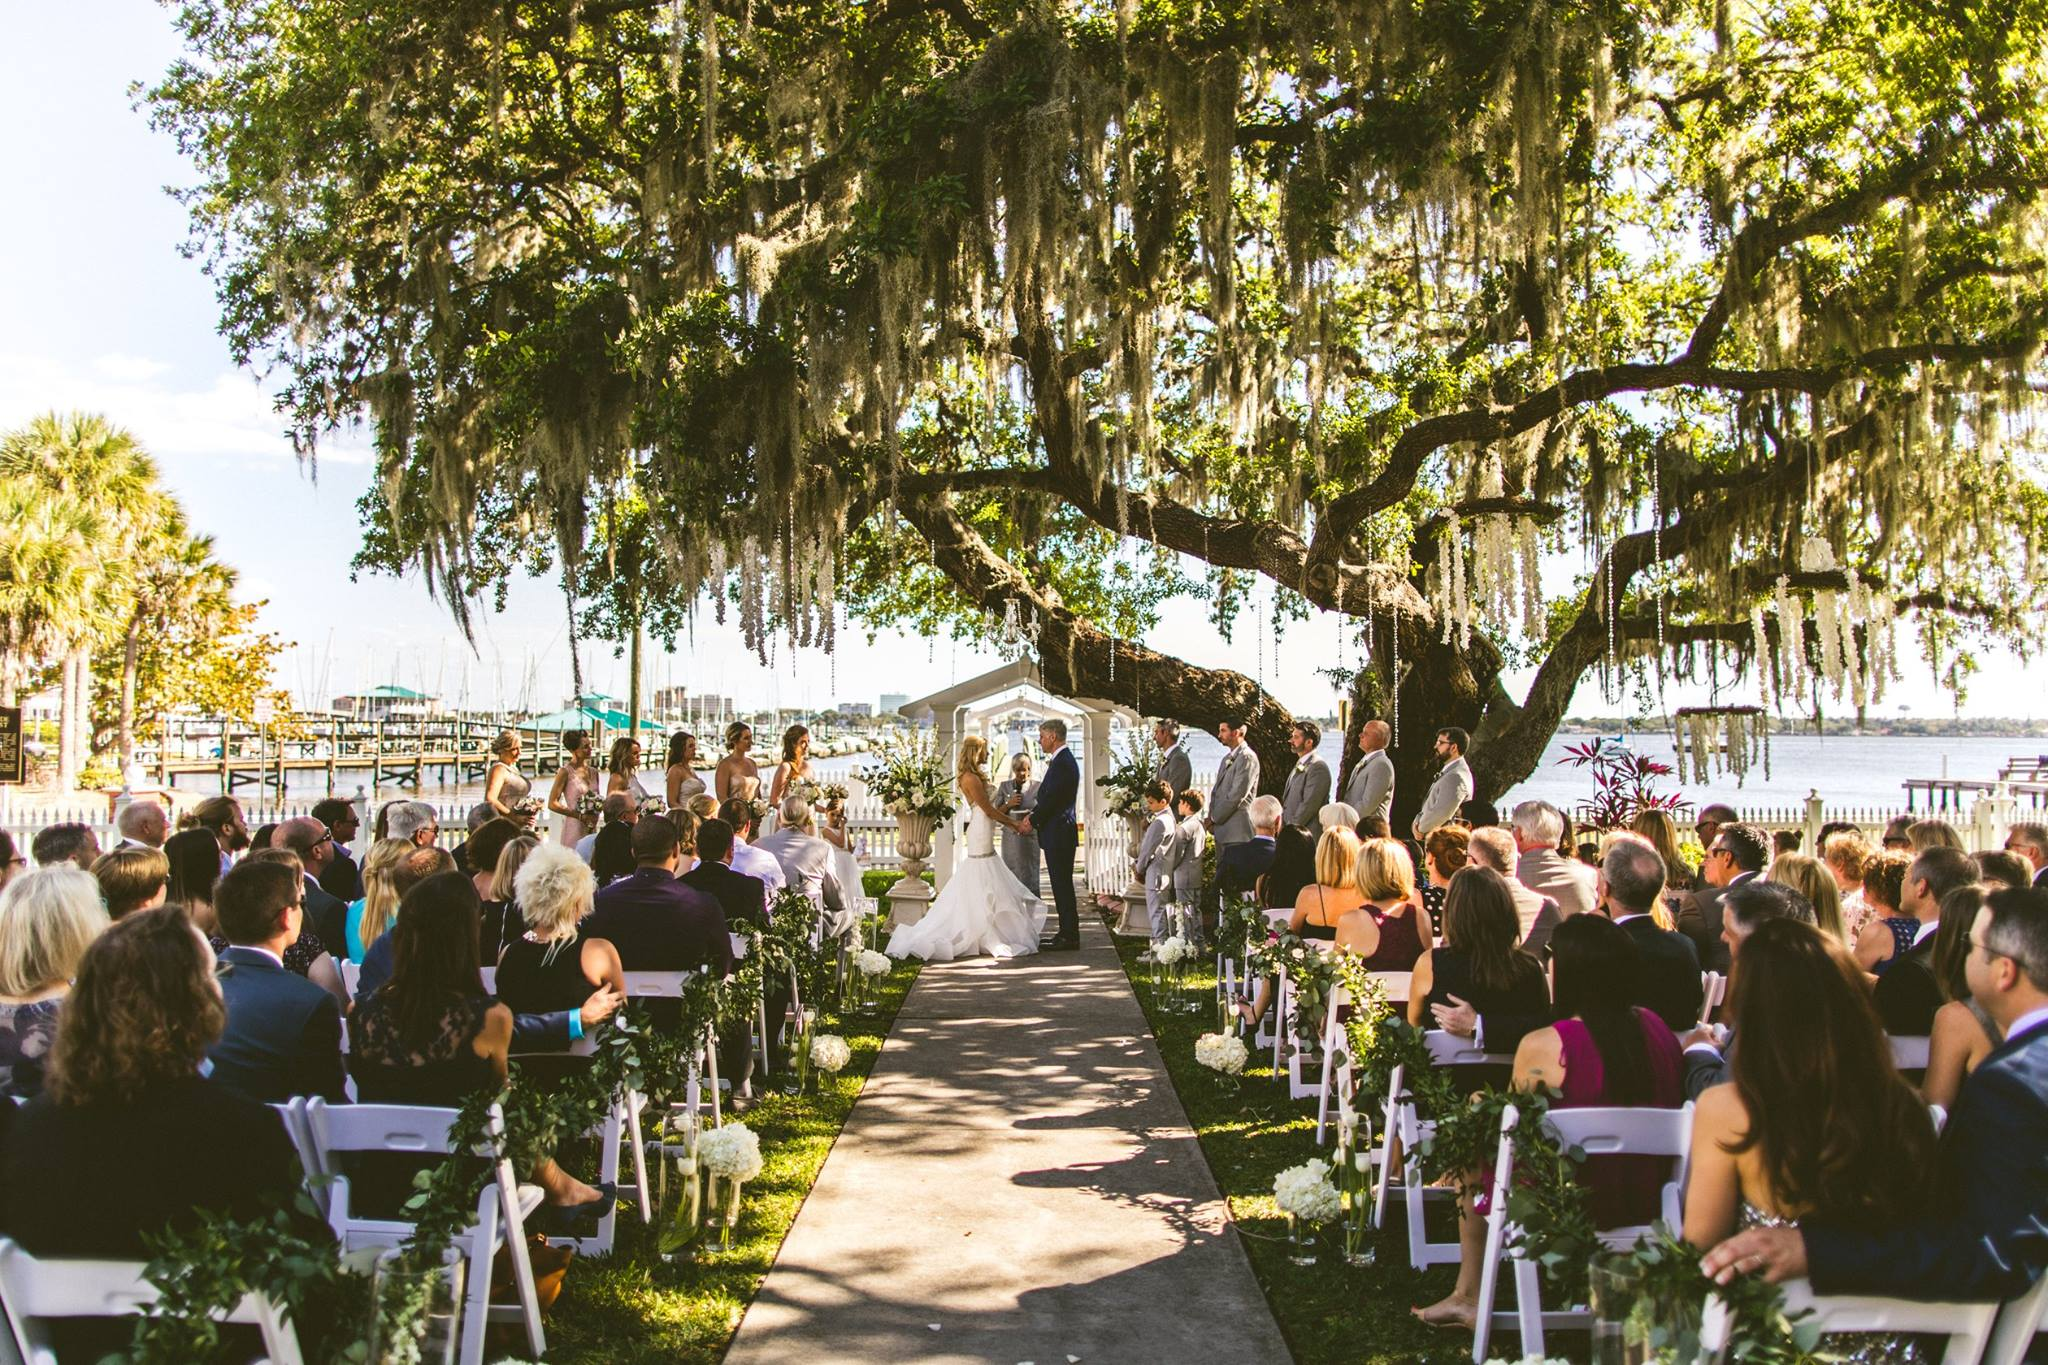 Plan Your Perfect Wedding Day - Get help planning your Jacksonville wedding with our detailed guide & downloadable checklists.